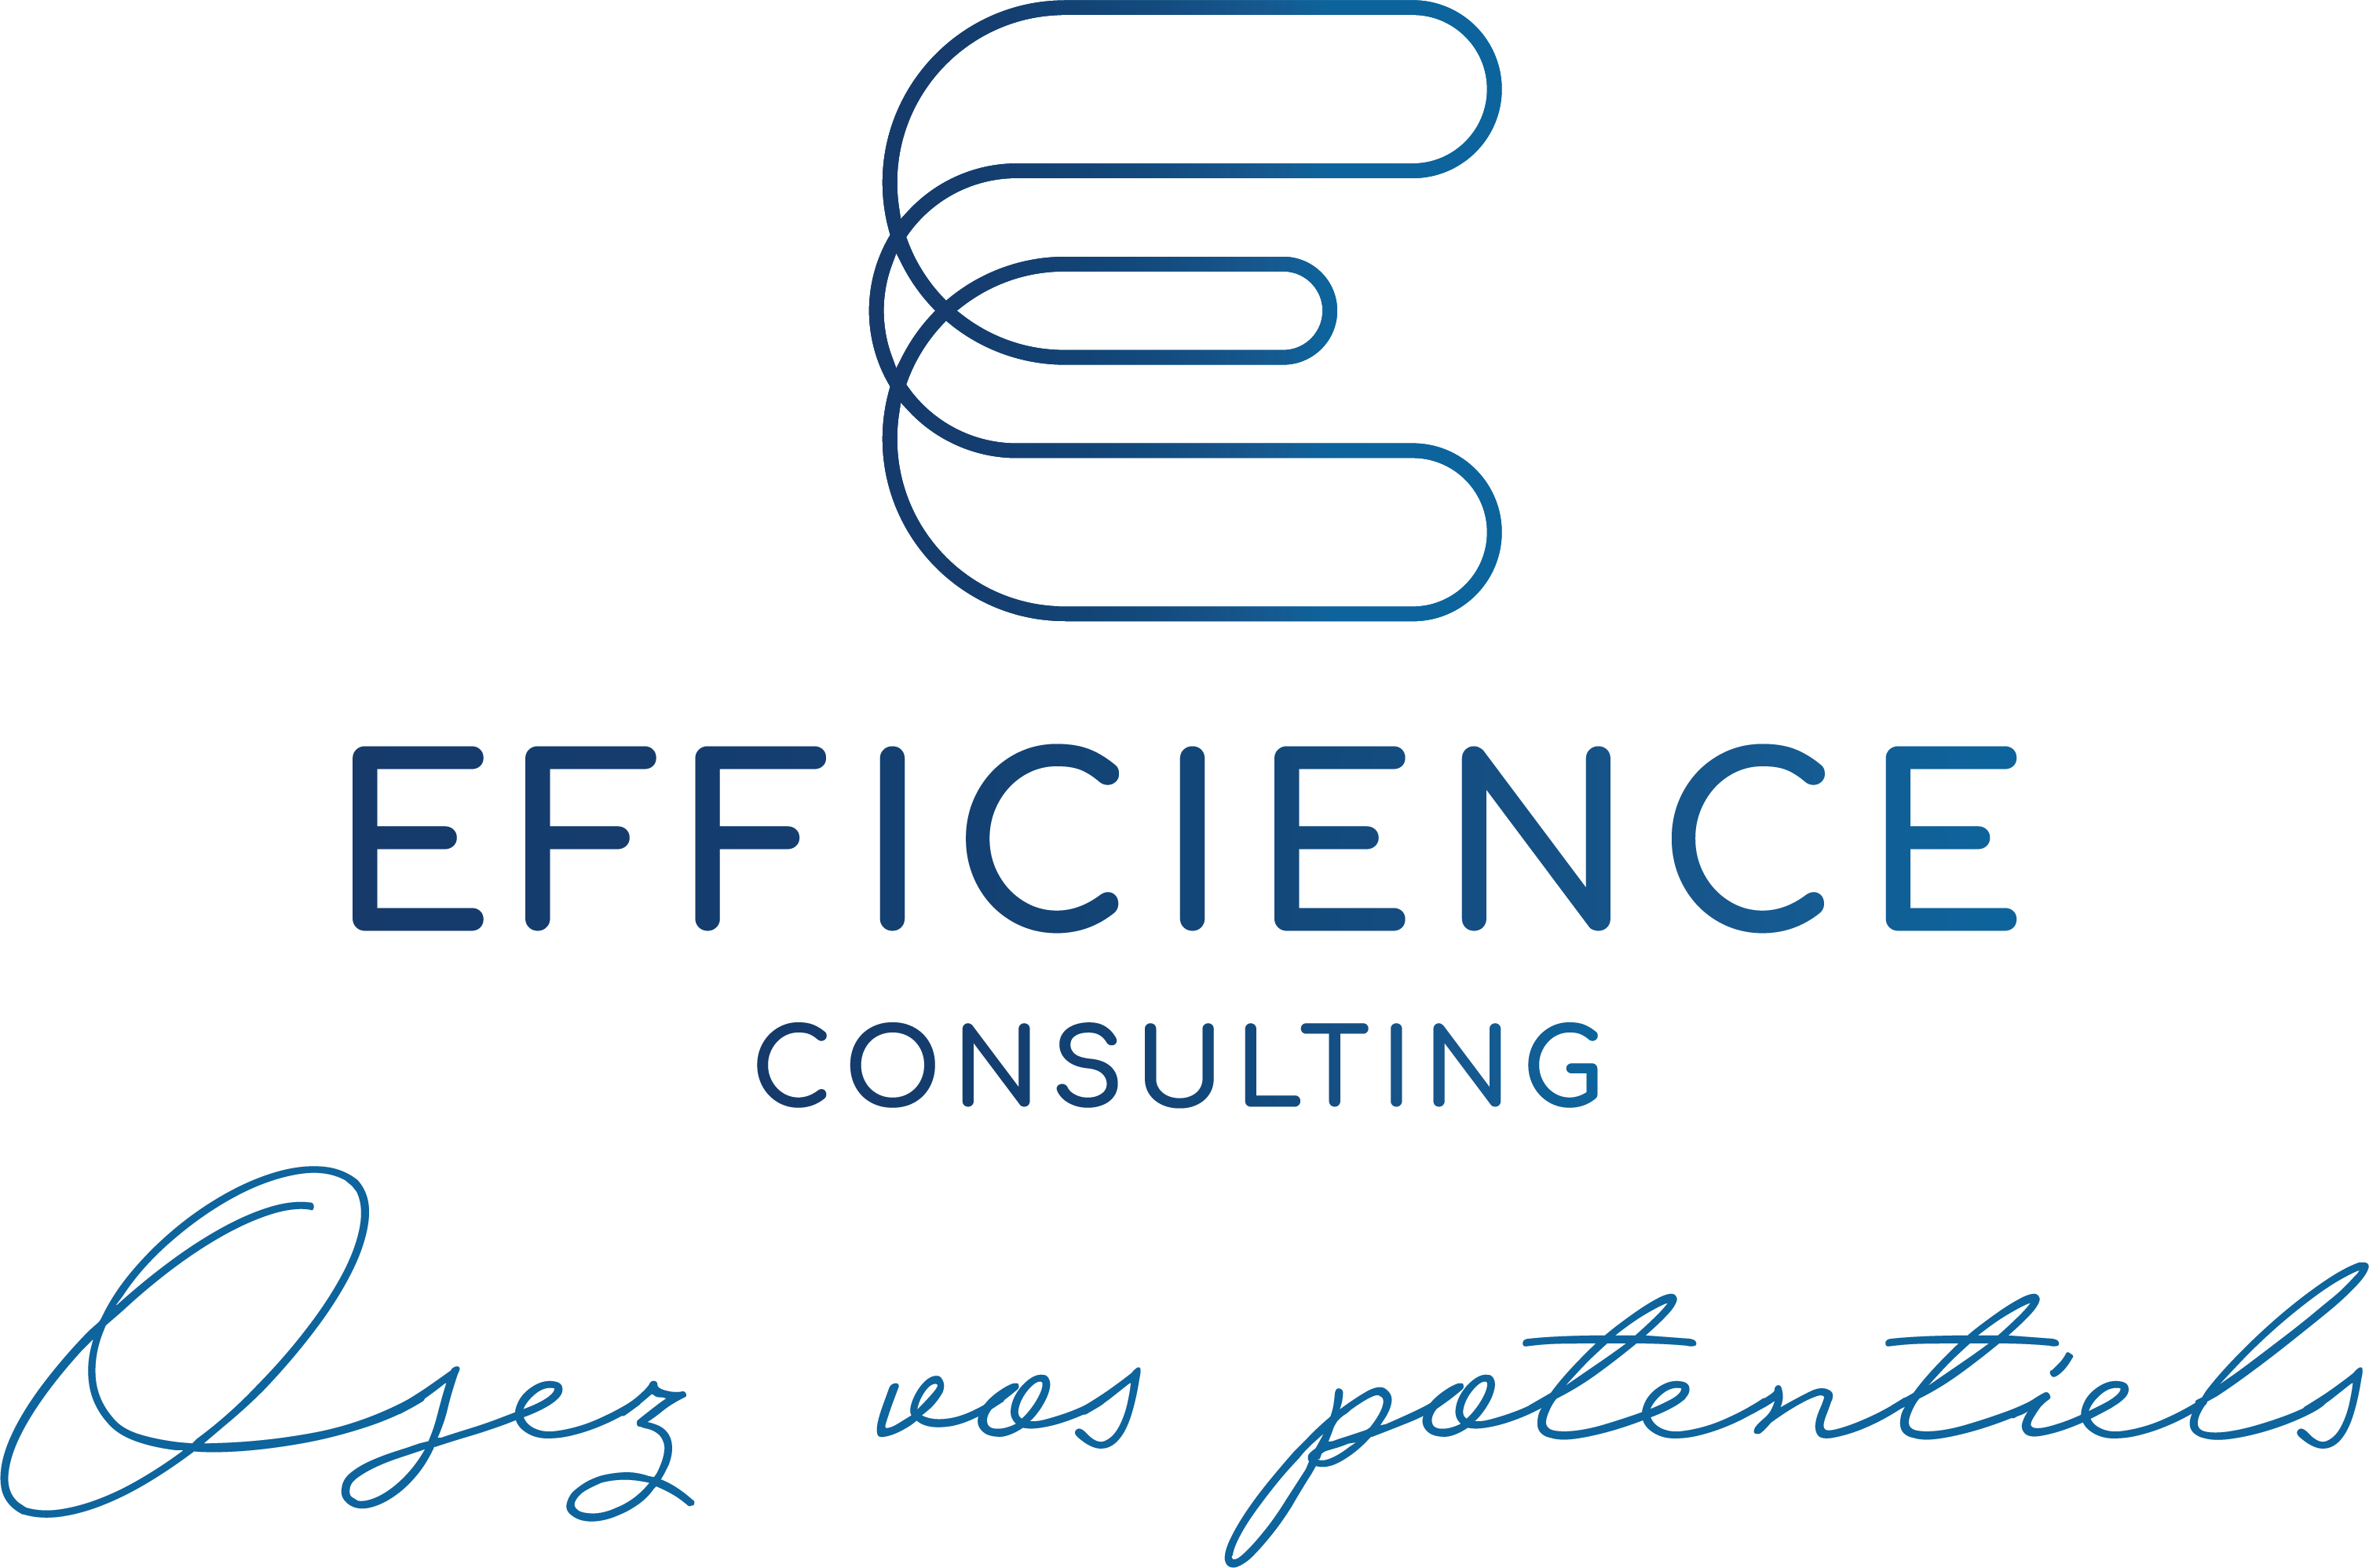 EFFICIENCE CONSULTING - Paris 8ème (75)